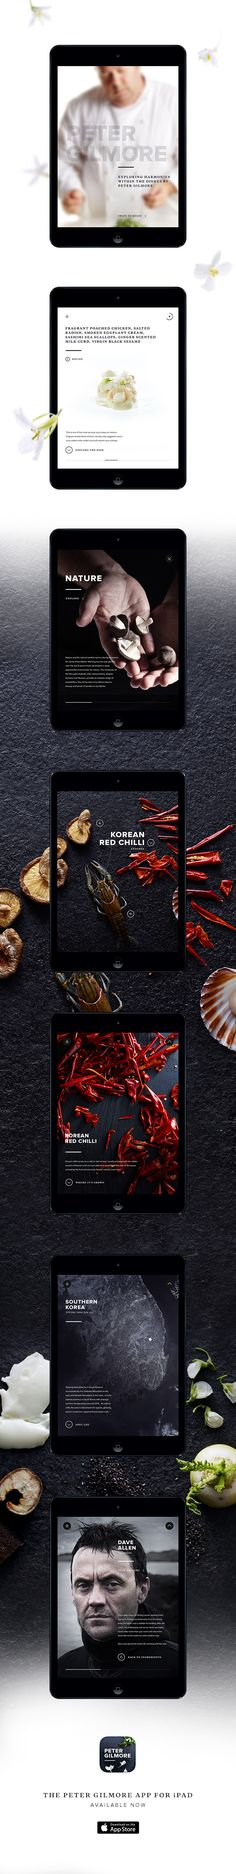 Peter Gilmore iPad App on Behance